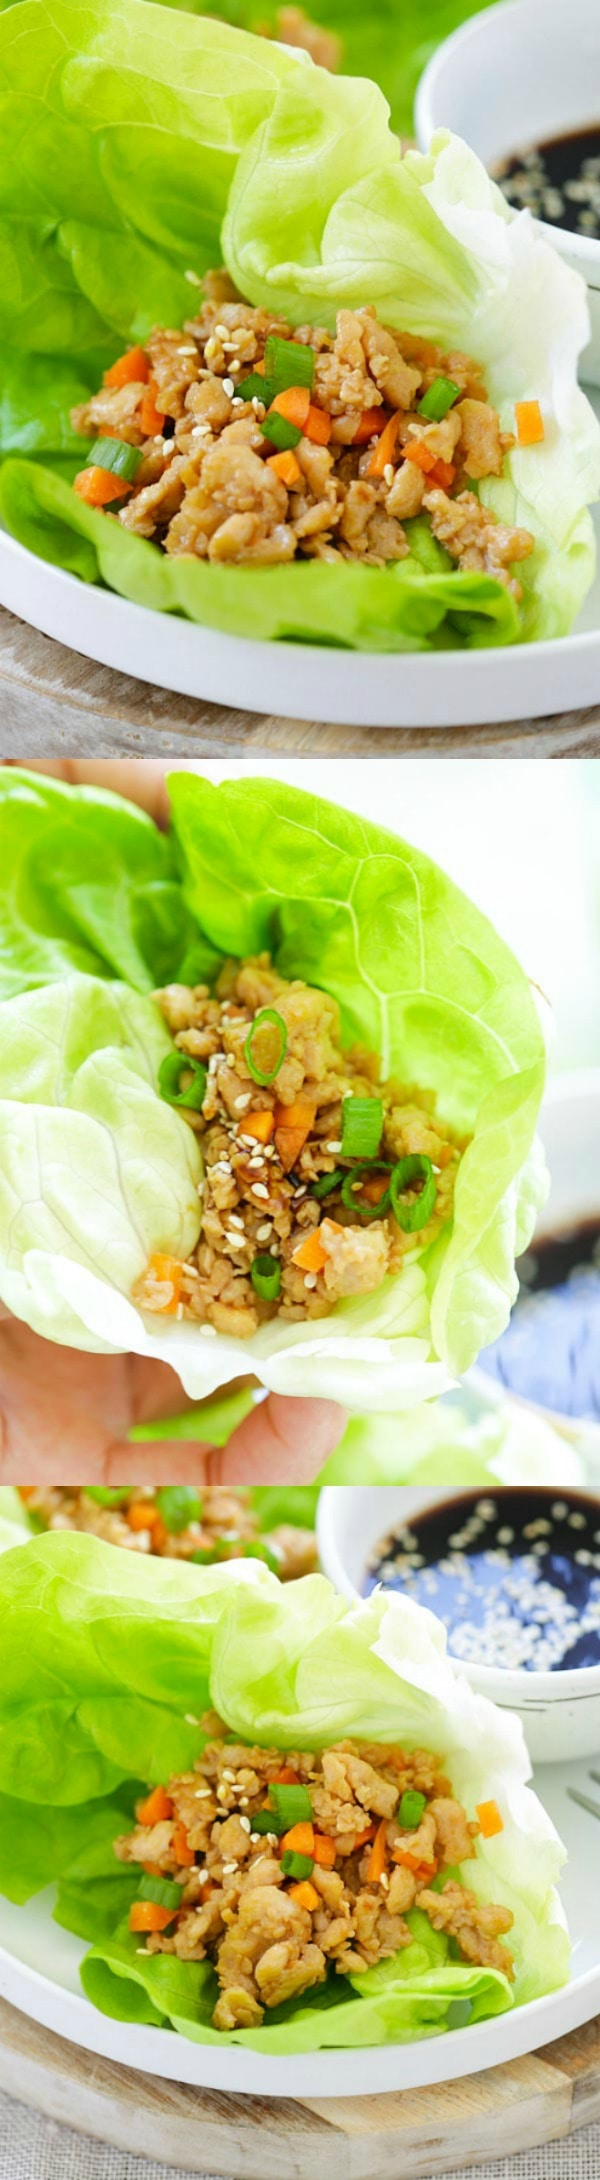 Chicken Lettuce Wraps - quick, easy and the best lettuce wraps recipe with juicy and moist ground chicken wrapped up with fresh and crisp lettuce leaves. Homemade is always better than P. F. Chang's or Chinese takeout | rasamalaysia.com